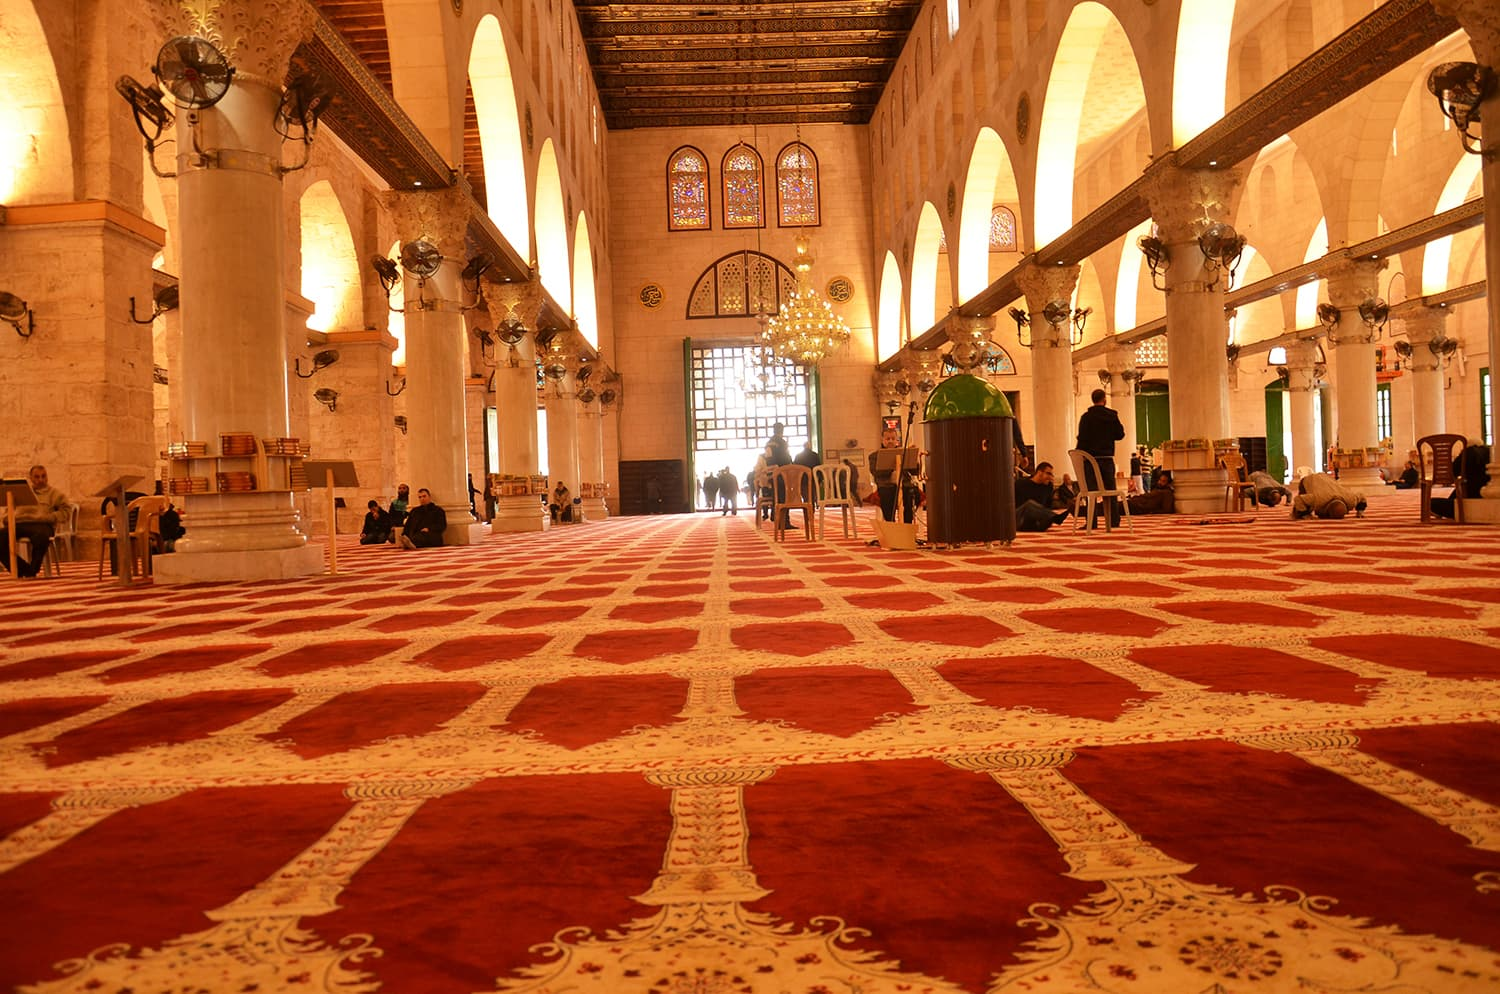 Inside the Al-Aqsa mosque.